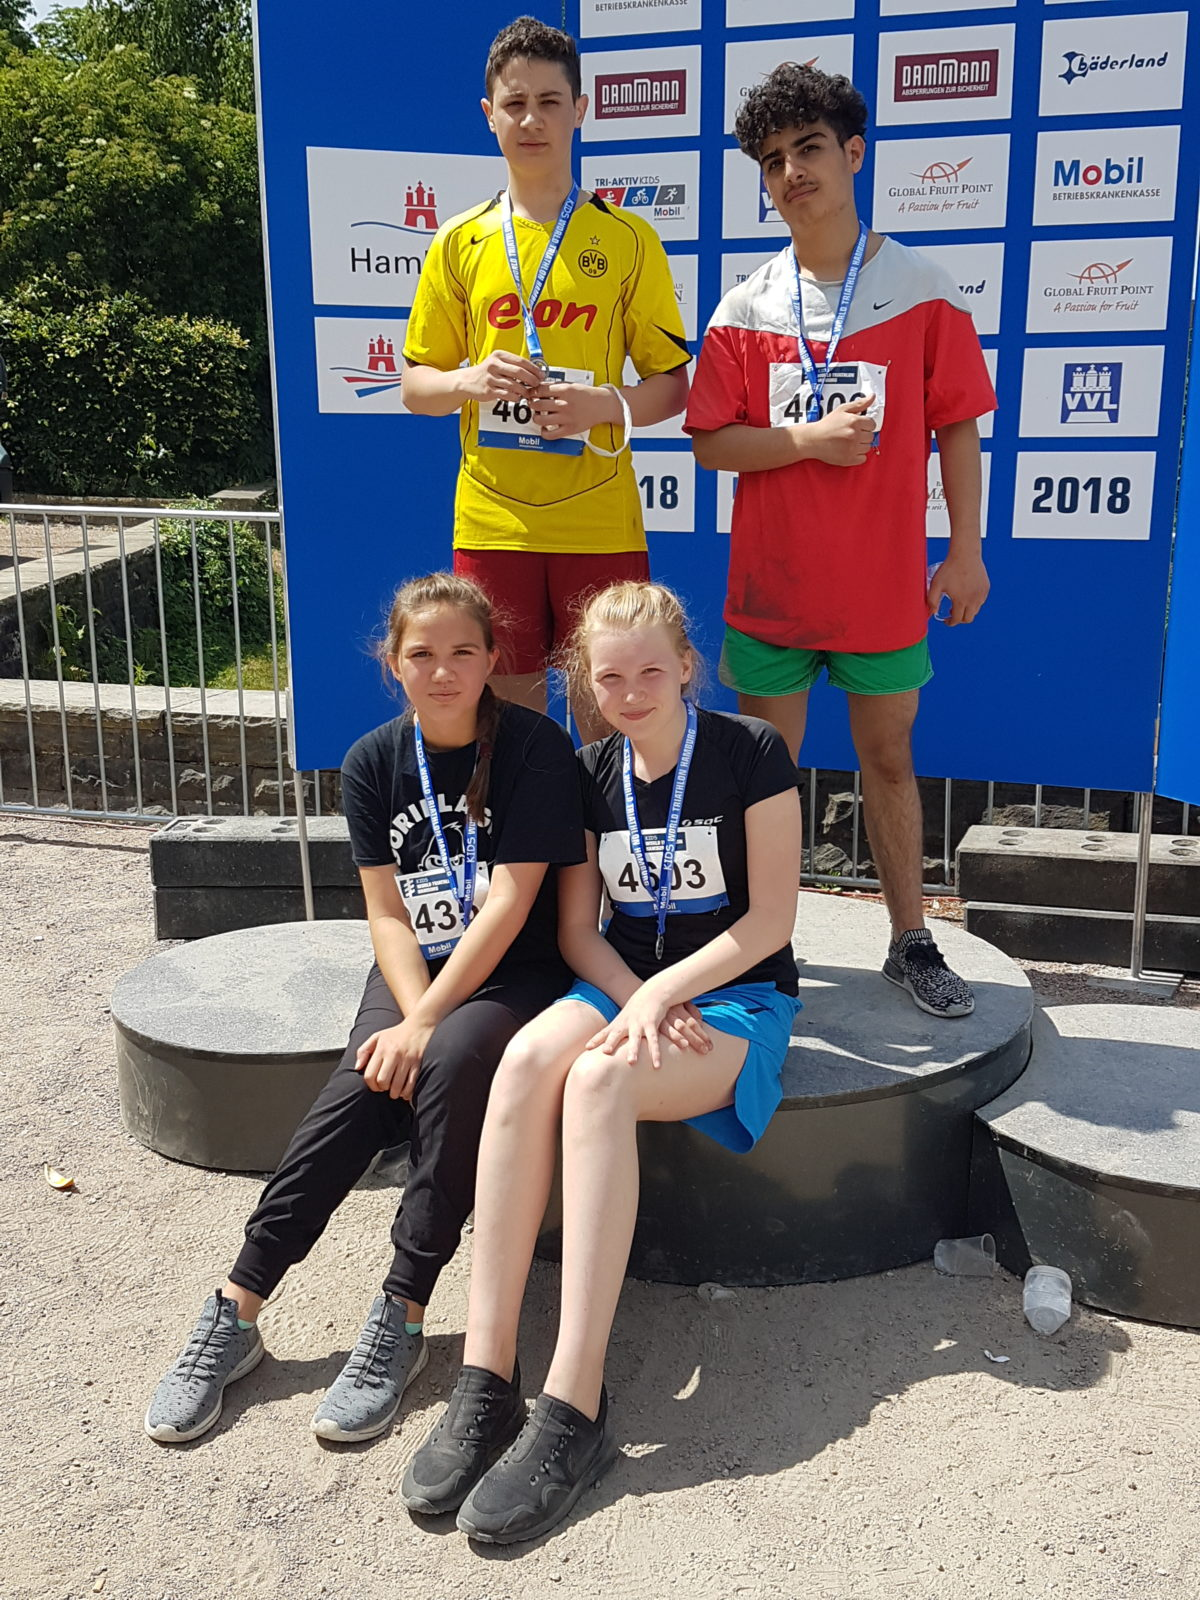 Neustadt nimmt am Kids-World-Triathlon teil